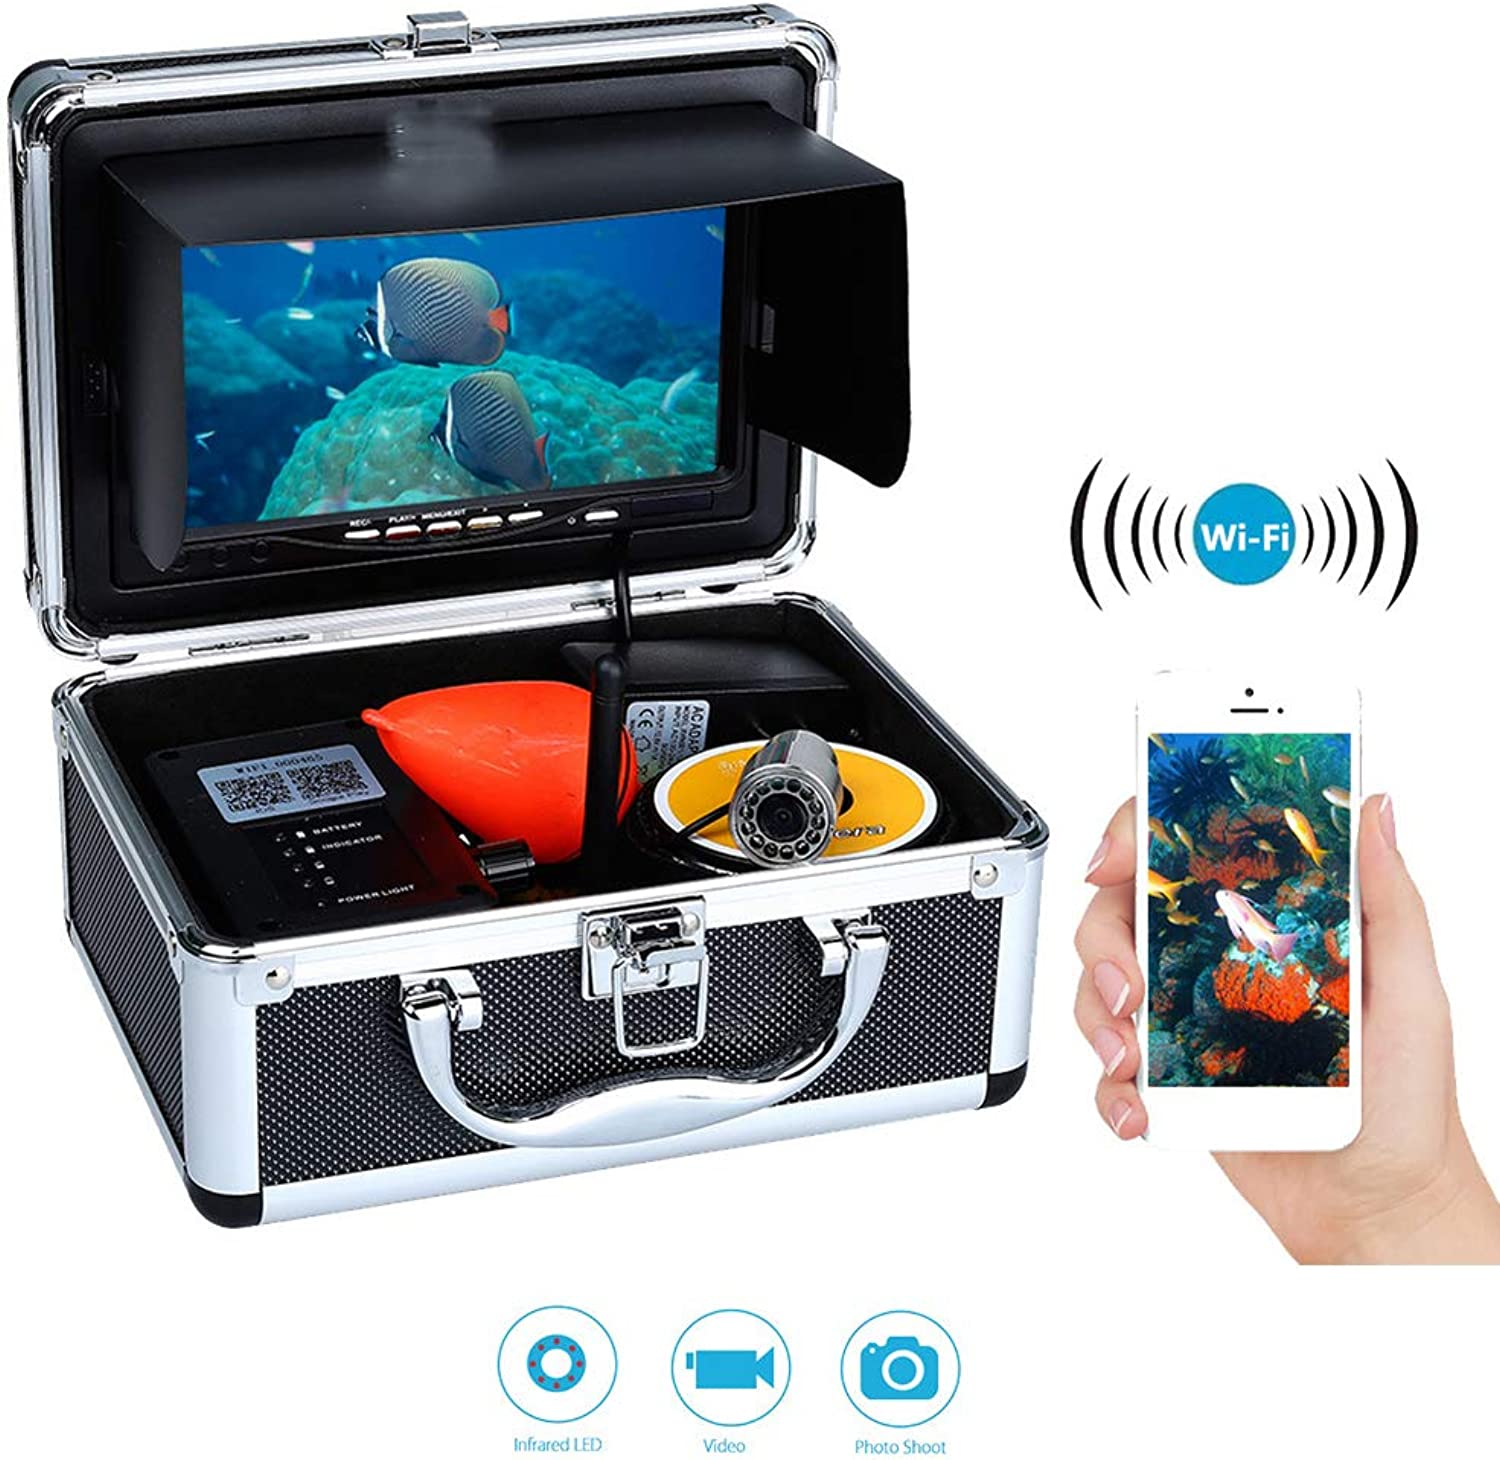 WiFi Fish Finder with 7 inch TFT LCD Display,1000TVL HD Camera,12 Highlight NightVision Lights,SunVisor and DVR fuction for iOS Android,Infraredlight,50M